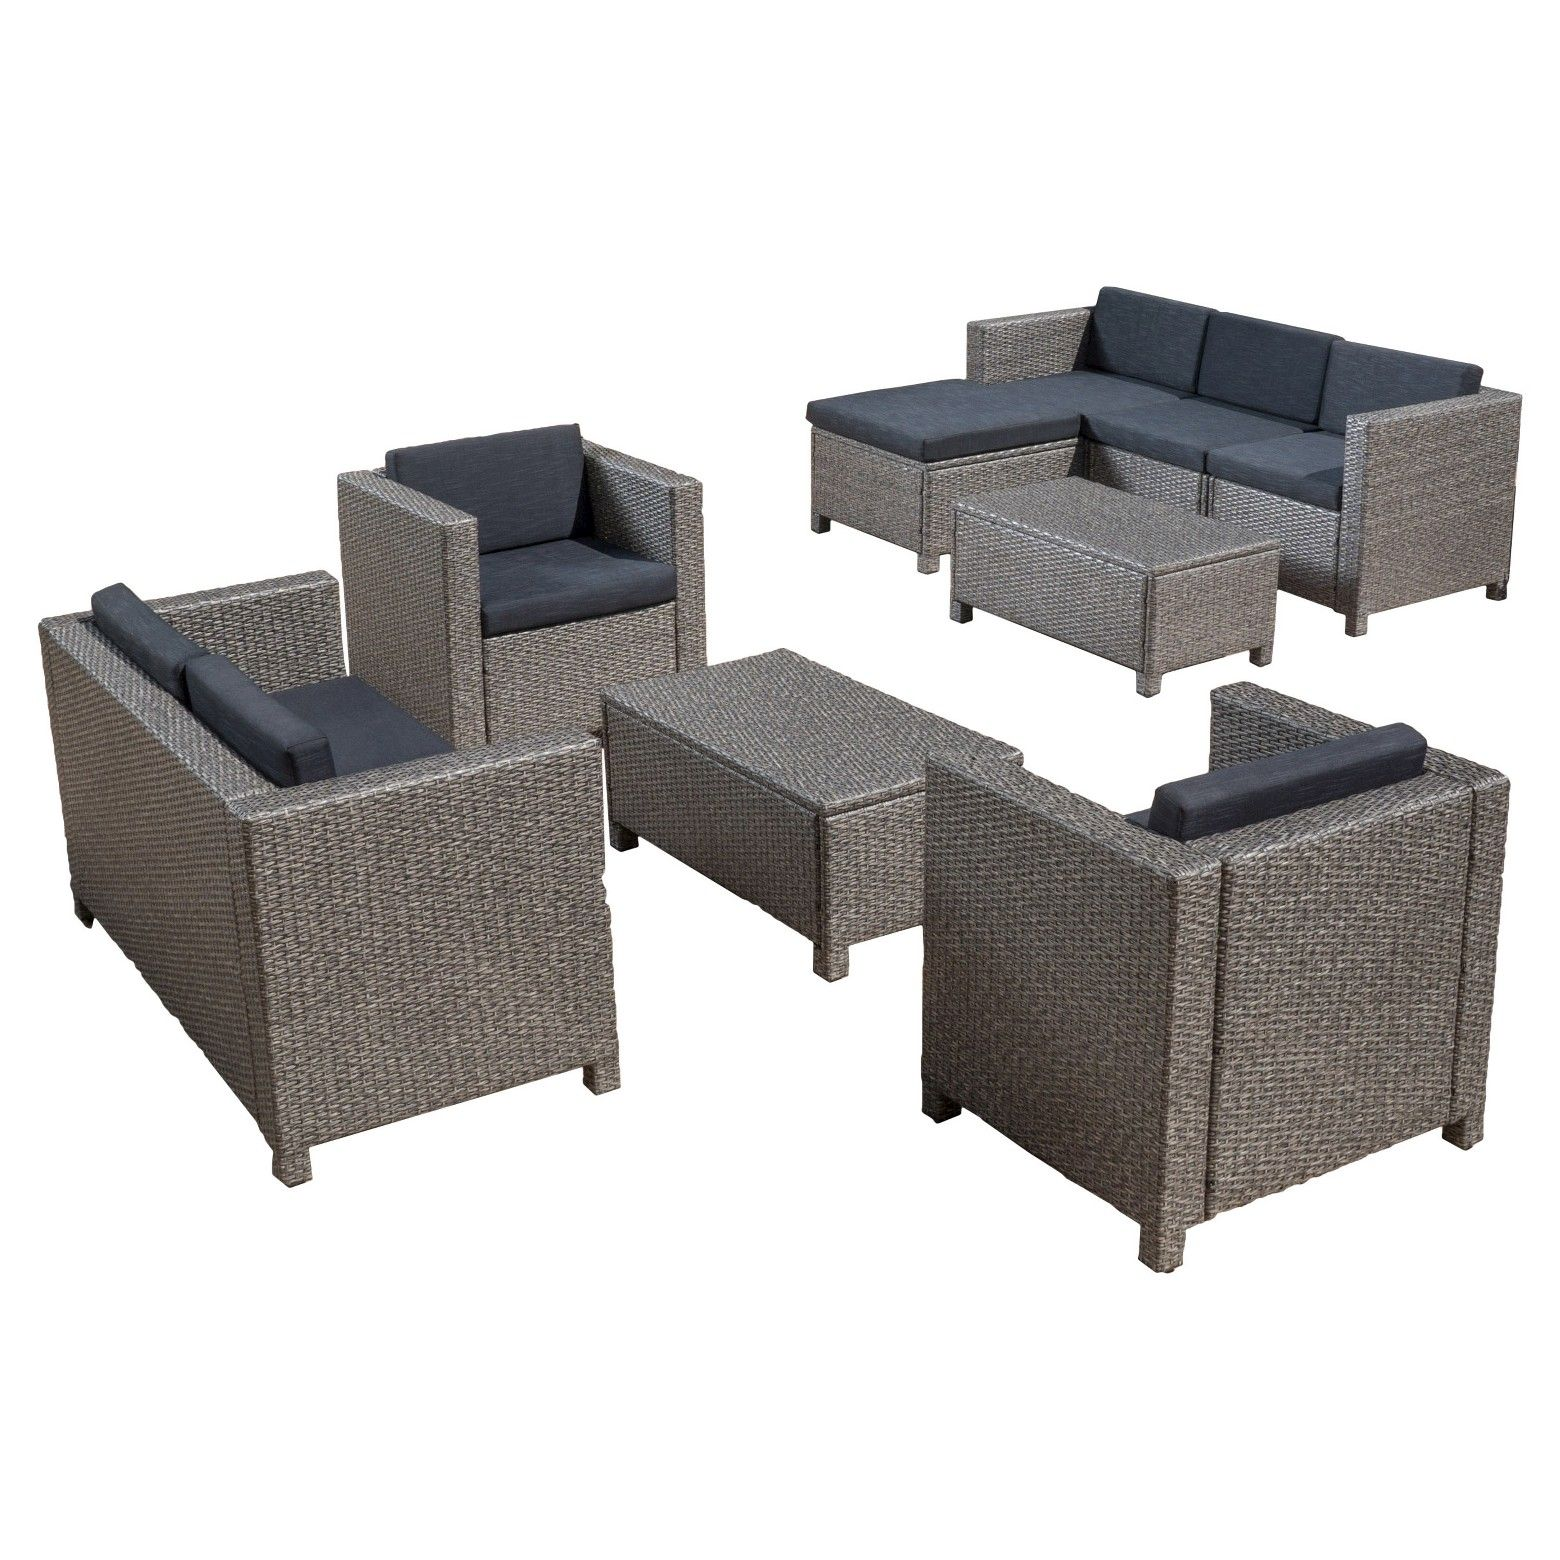 Christopher Knight Home Puerta 9pc Wicker Seating Set | Room